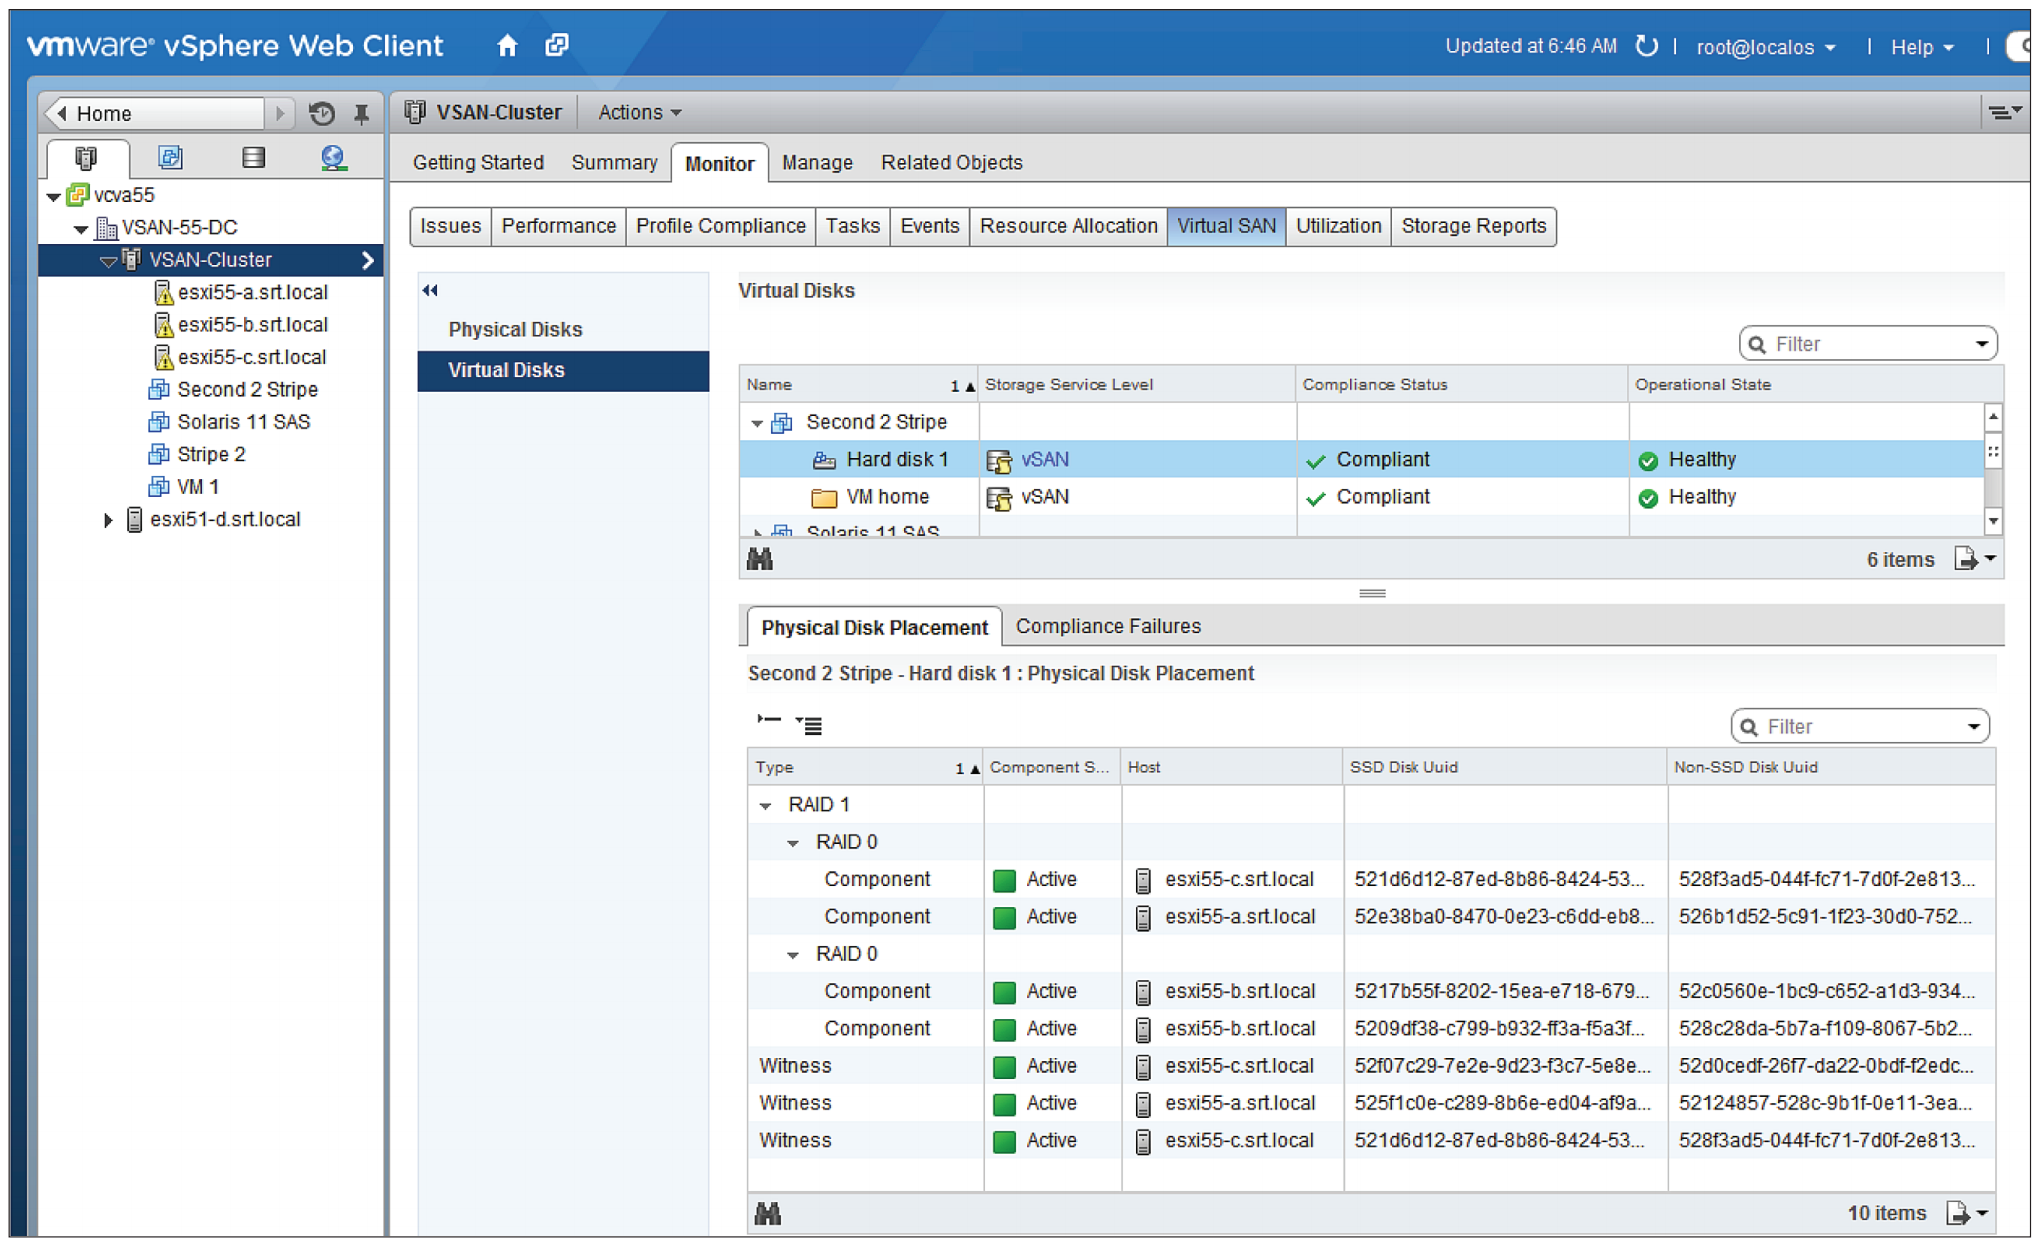 New Technical White Paper - What's New in VMware Virtual SAN (VSAN